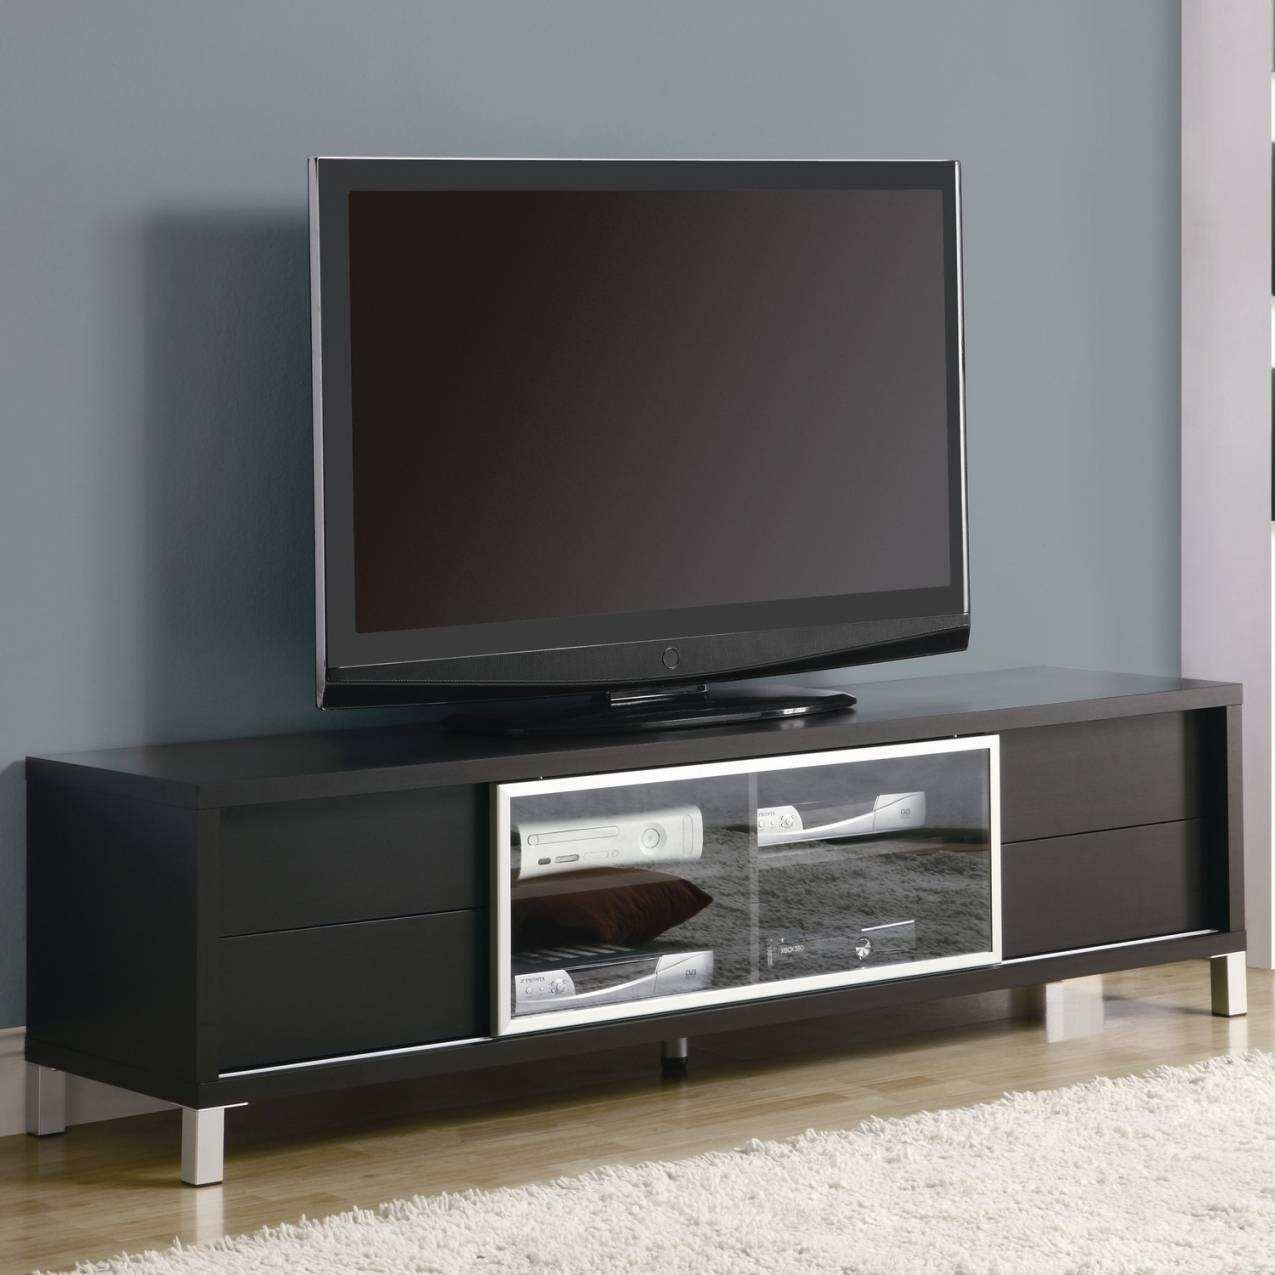 Unique Tv Stands. Remarkable Unique Tv Stands 100Cm Wide With with regard to Unique Tv Stands (Image 15 of 15)